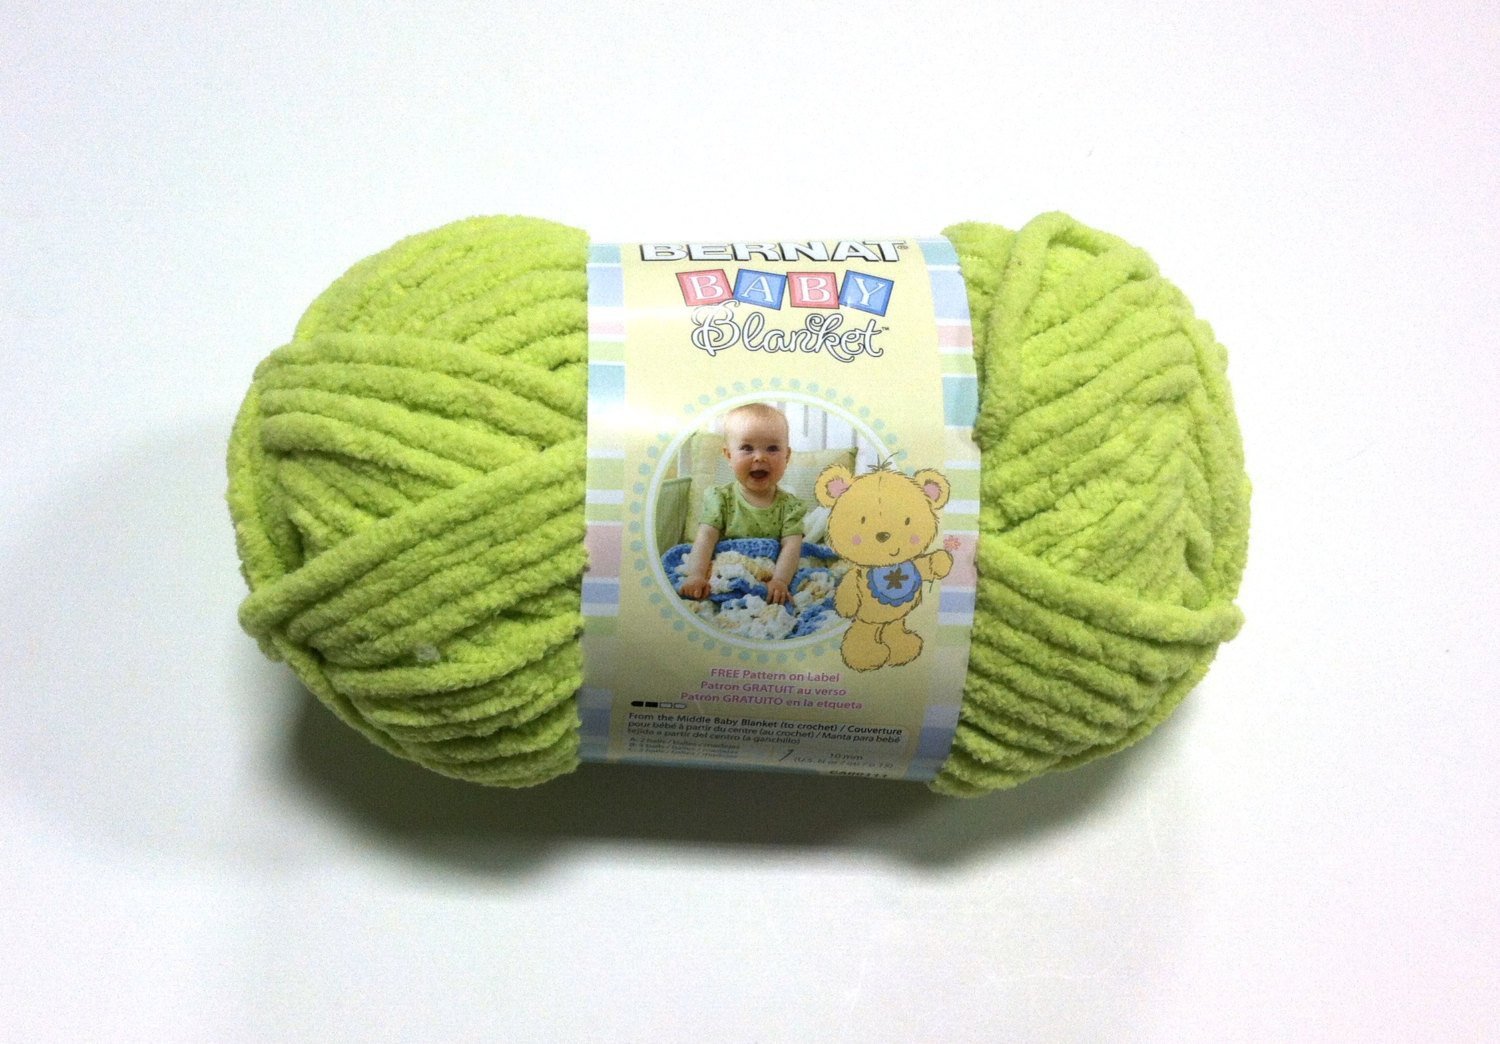 Bernat Baby Blanket Yarn New Bernat Baby Blanket Yarn In Lemon Lime New Color 3223 Of Delightful 42 Models Bernat Baby Blanket Yarn